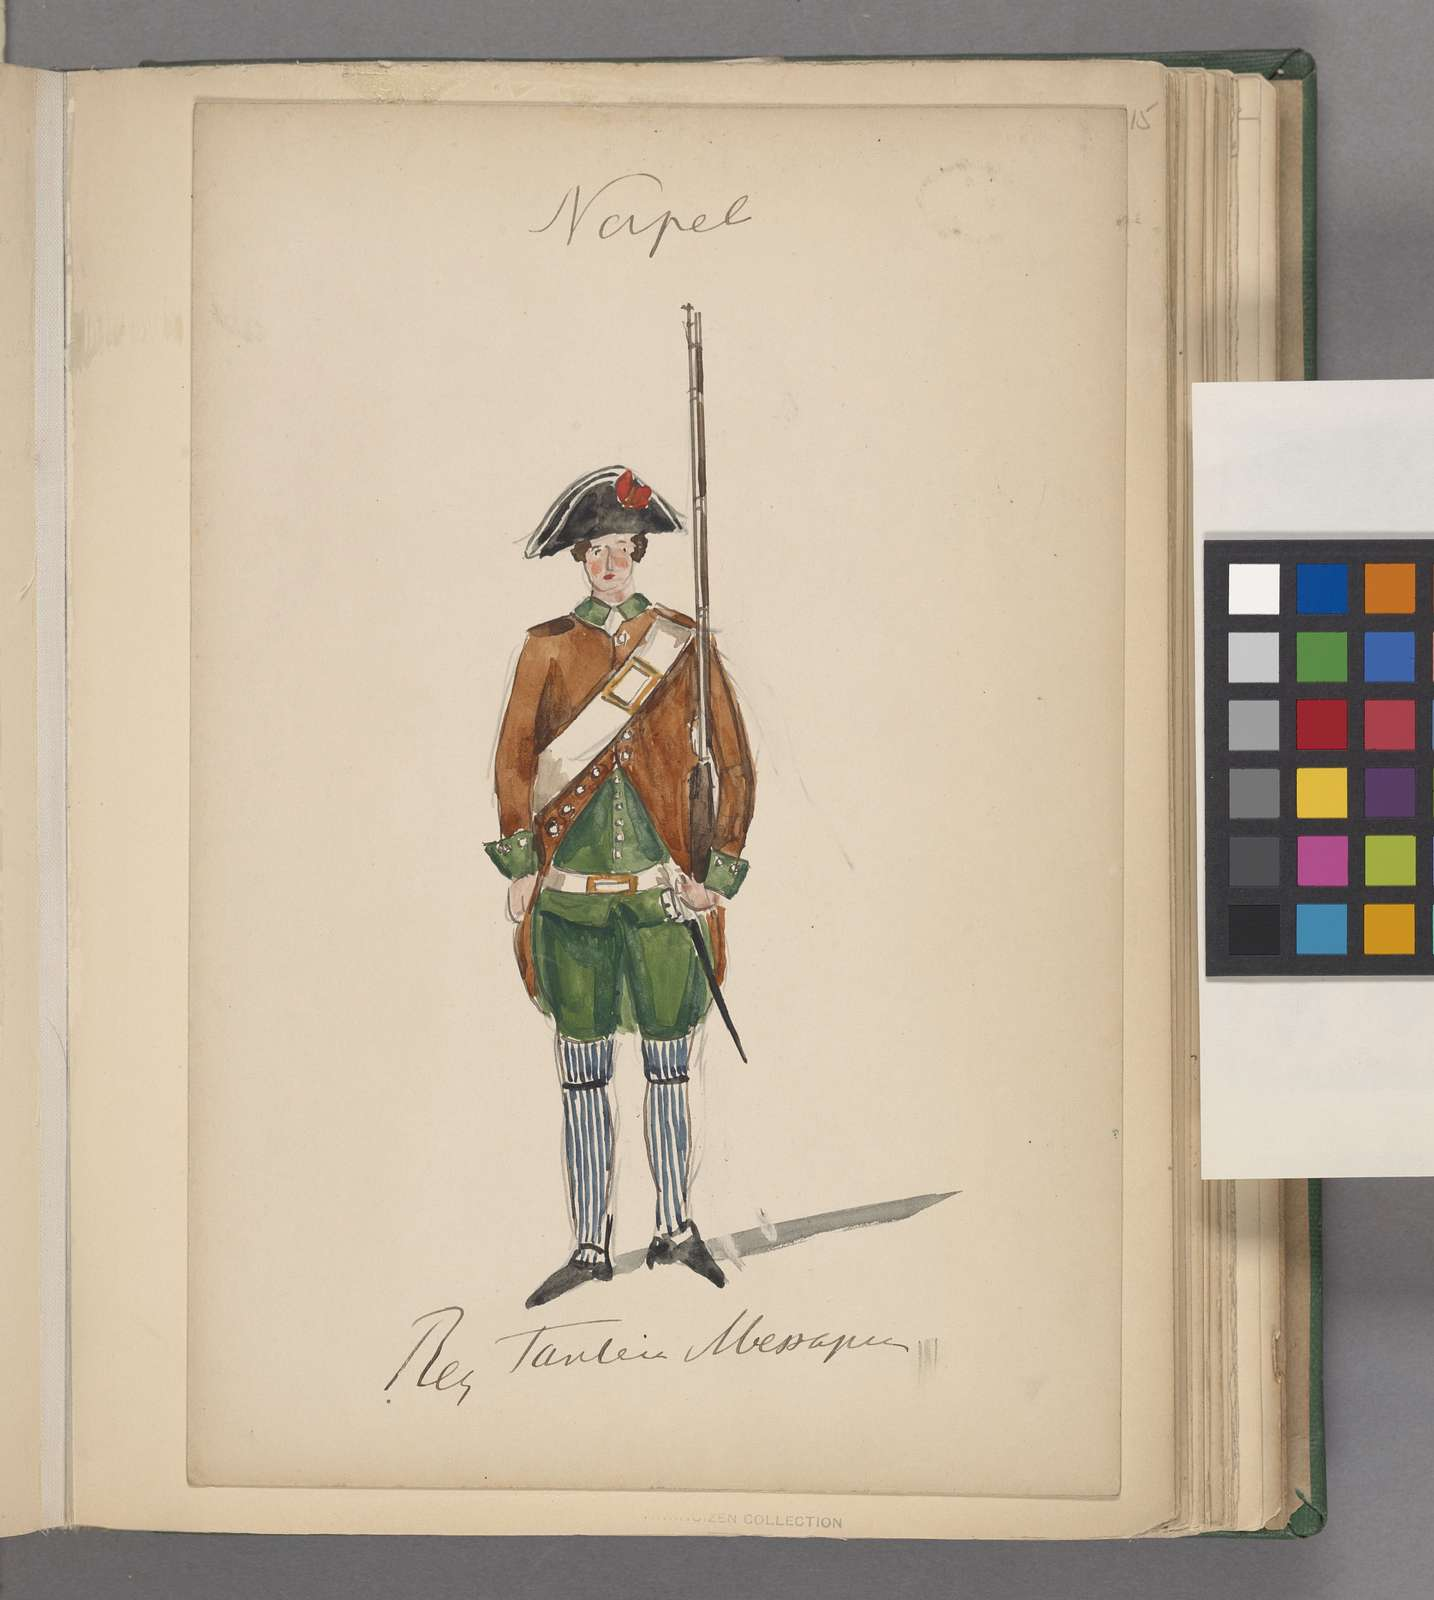 Italy. Kingdom of the Two Sicilies, 1760-1778